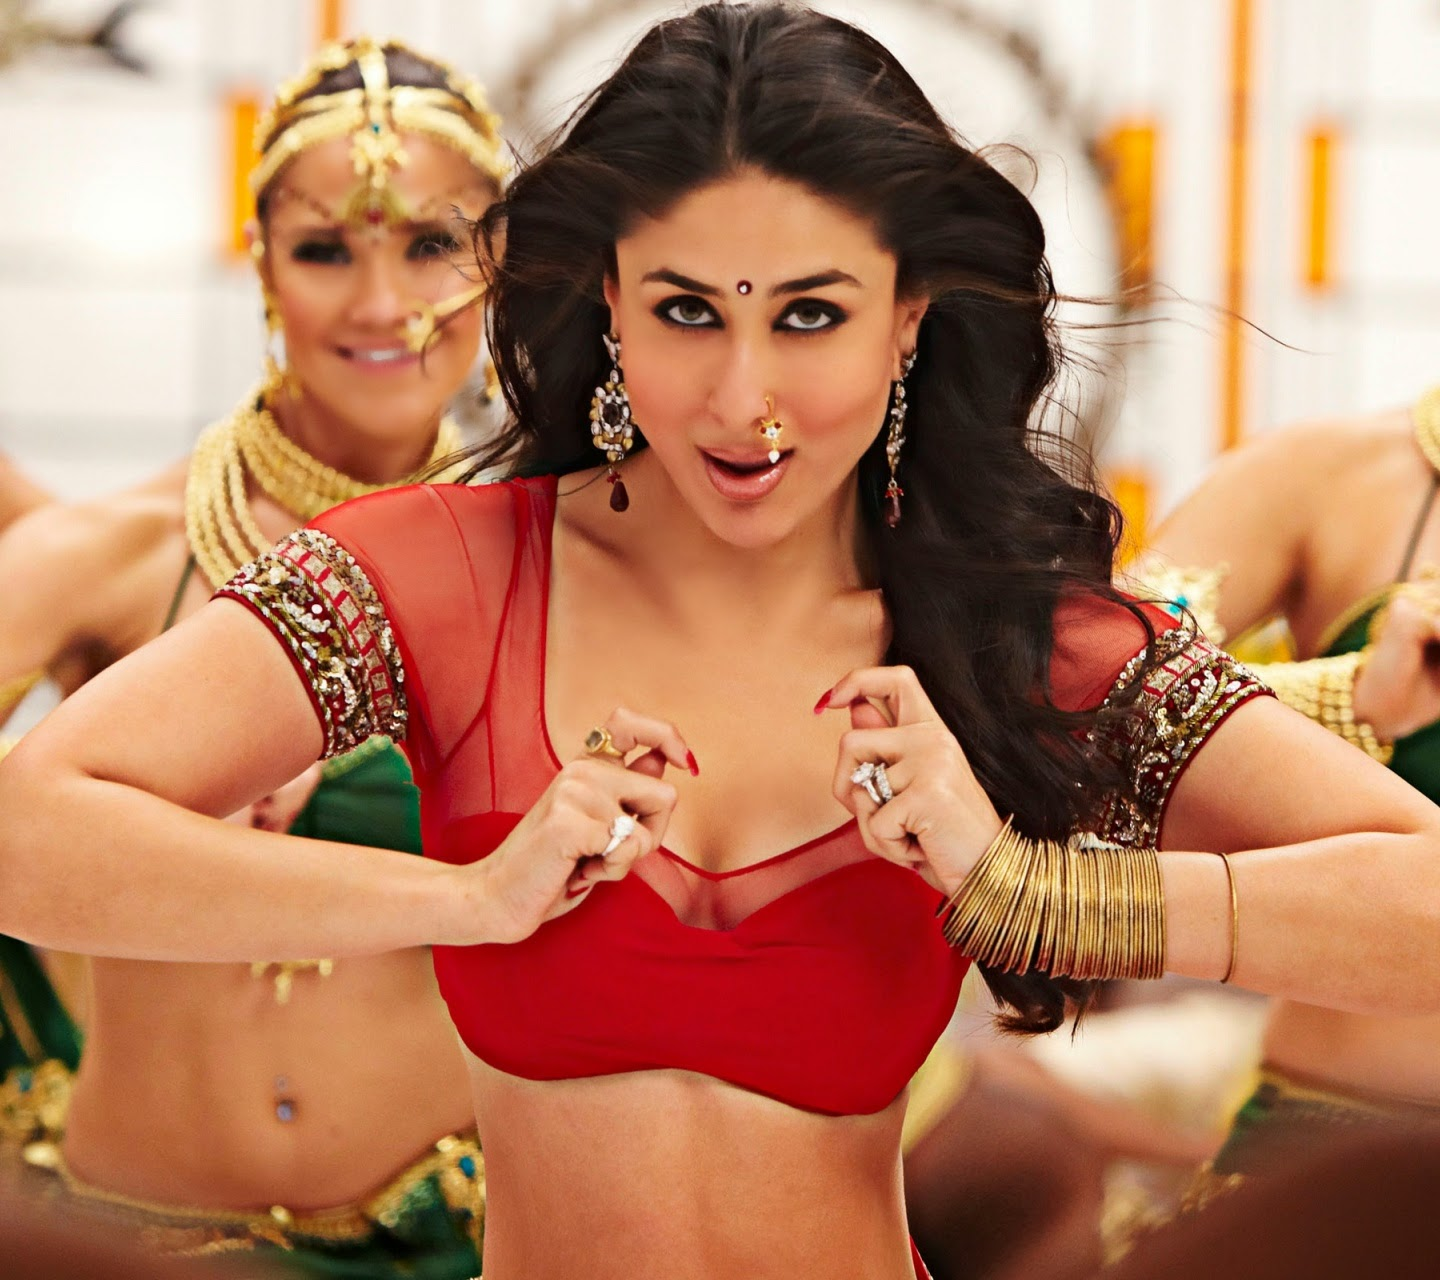 kareena kapoor in red bra hd latest wallpaper